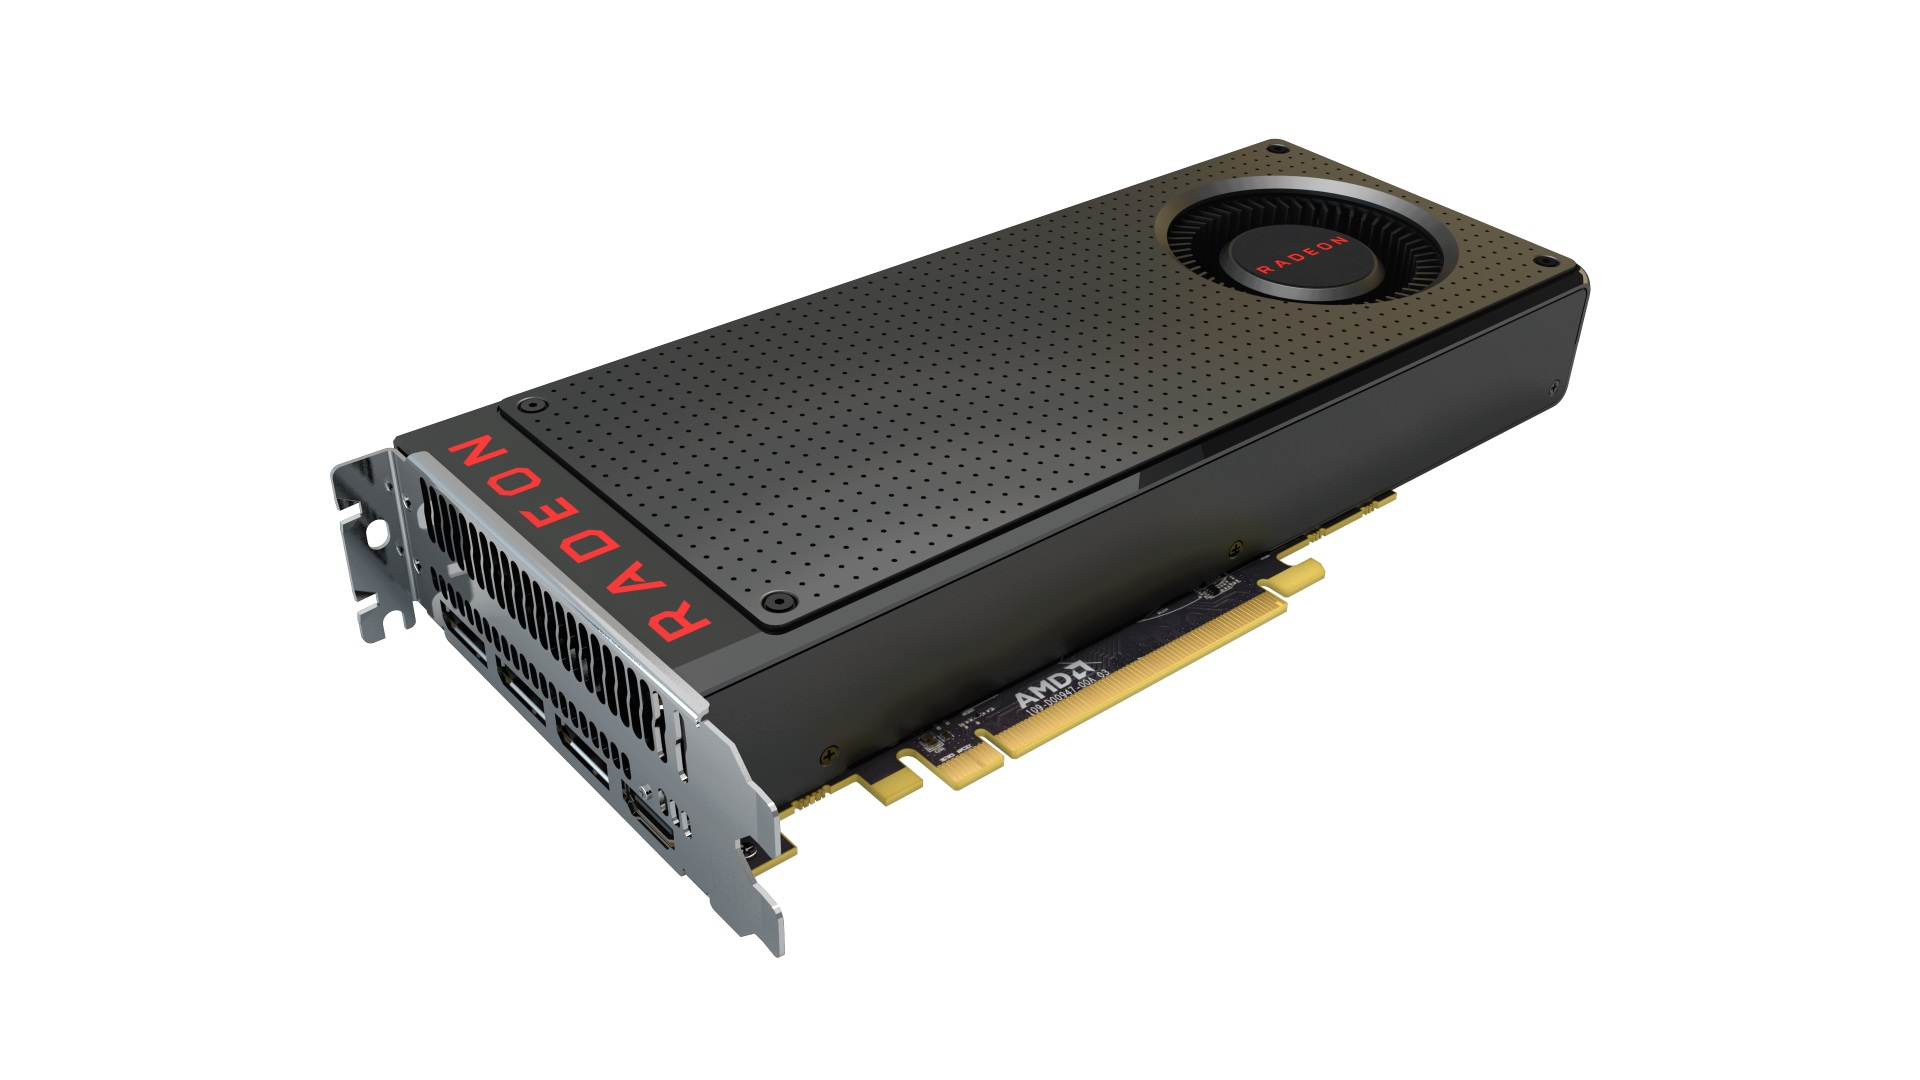 AMD Radeon RX 680 graphics card coming in November with 15